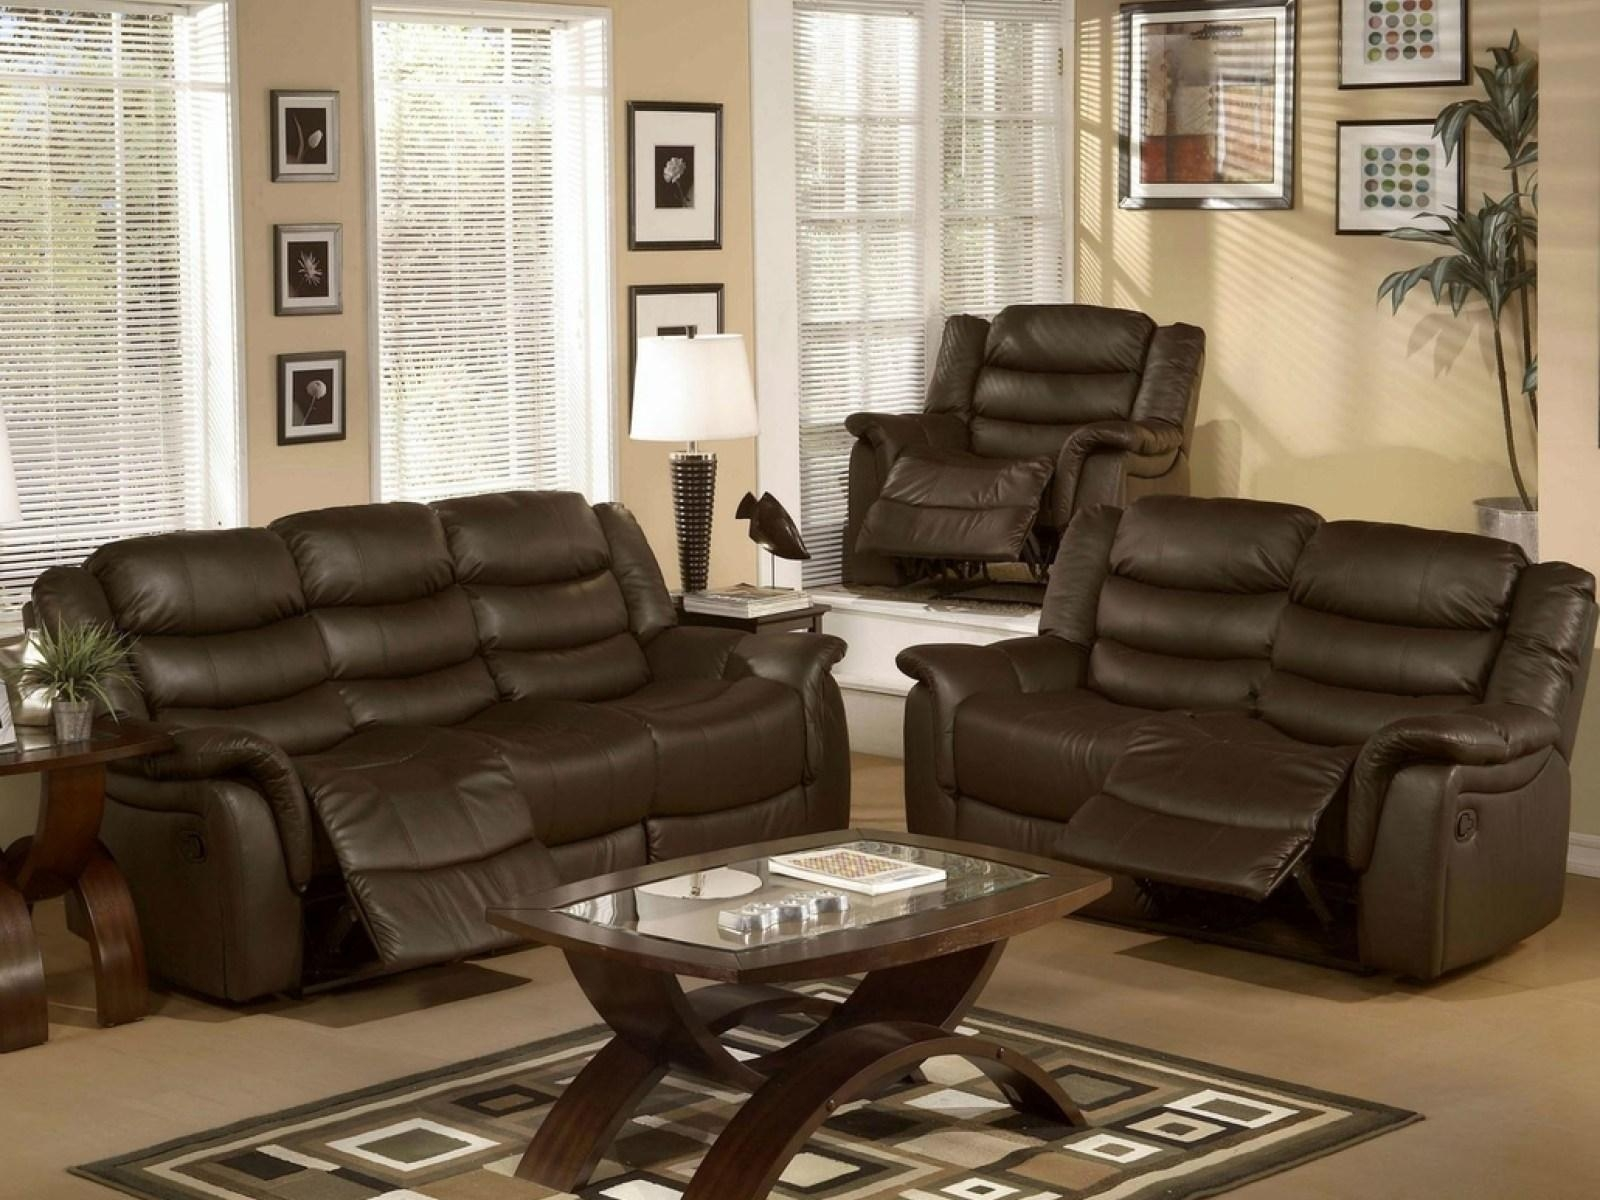 ▻ Sofa : Lovely Loveseat Sofa Riveting Small Apartment Loveseat In Sofa Loveseat And Chair Set (Image 1 of 20)